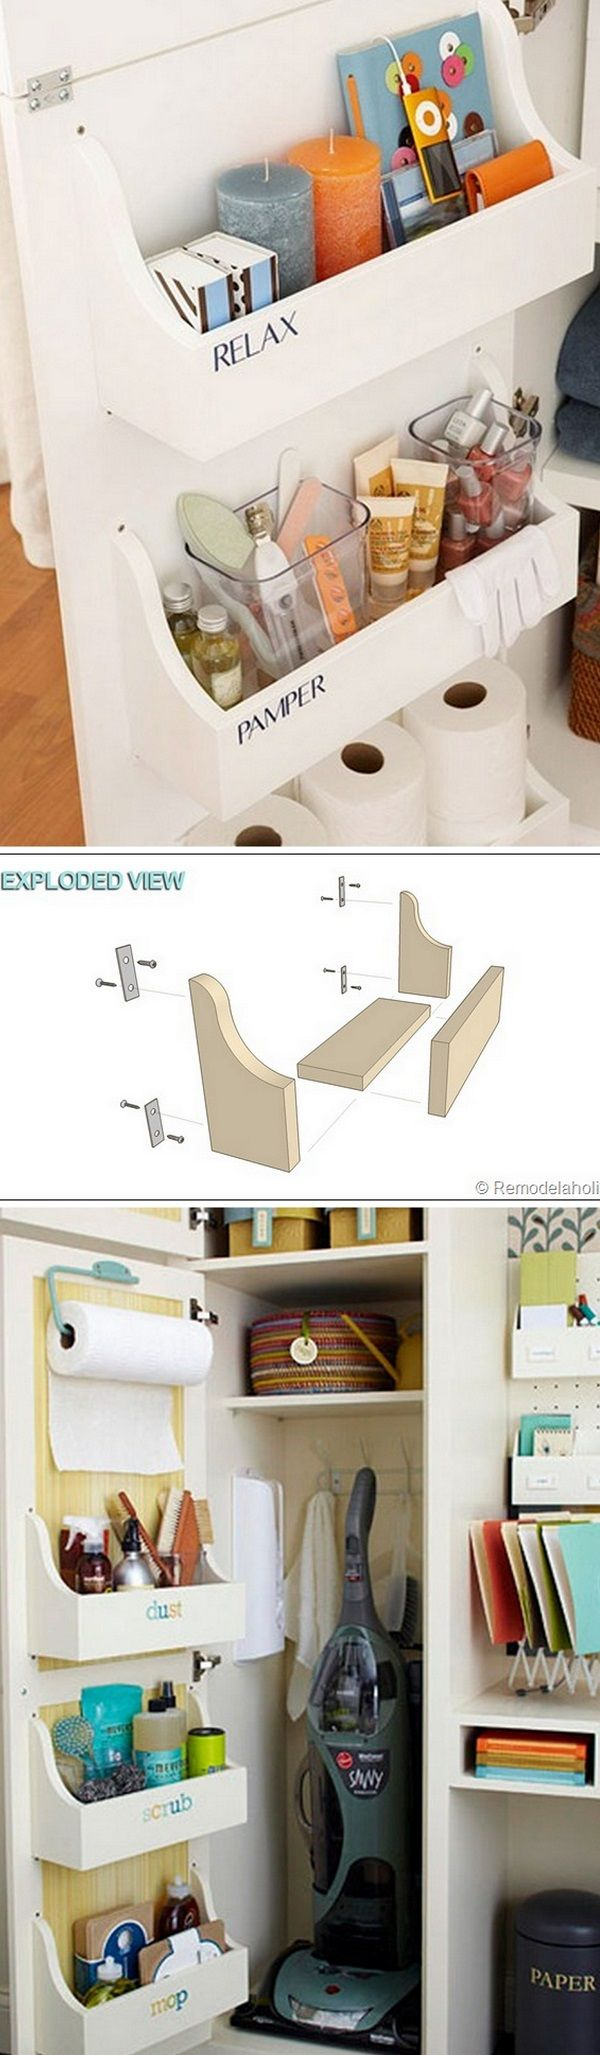 Check Out How To Easily Build This Diy Cabinet Door Storage Bin